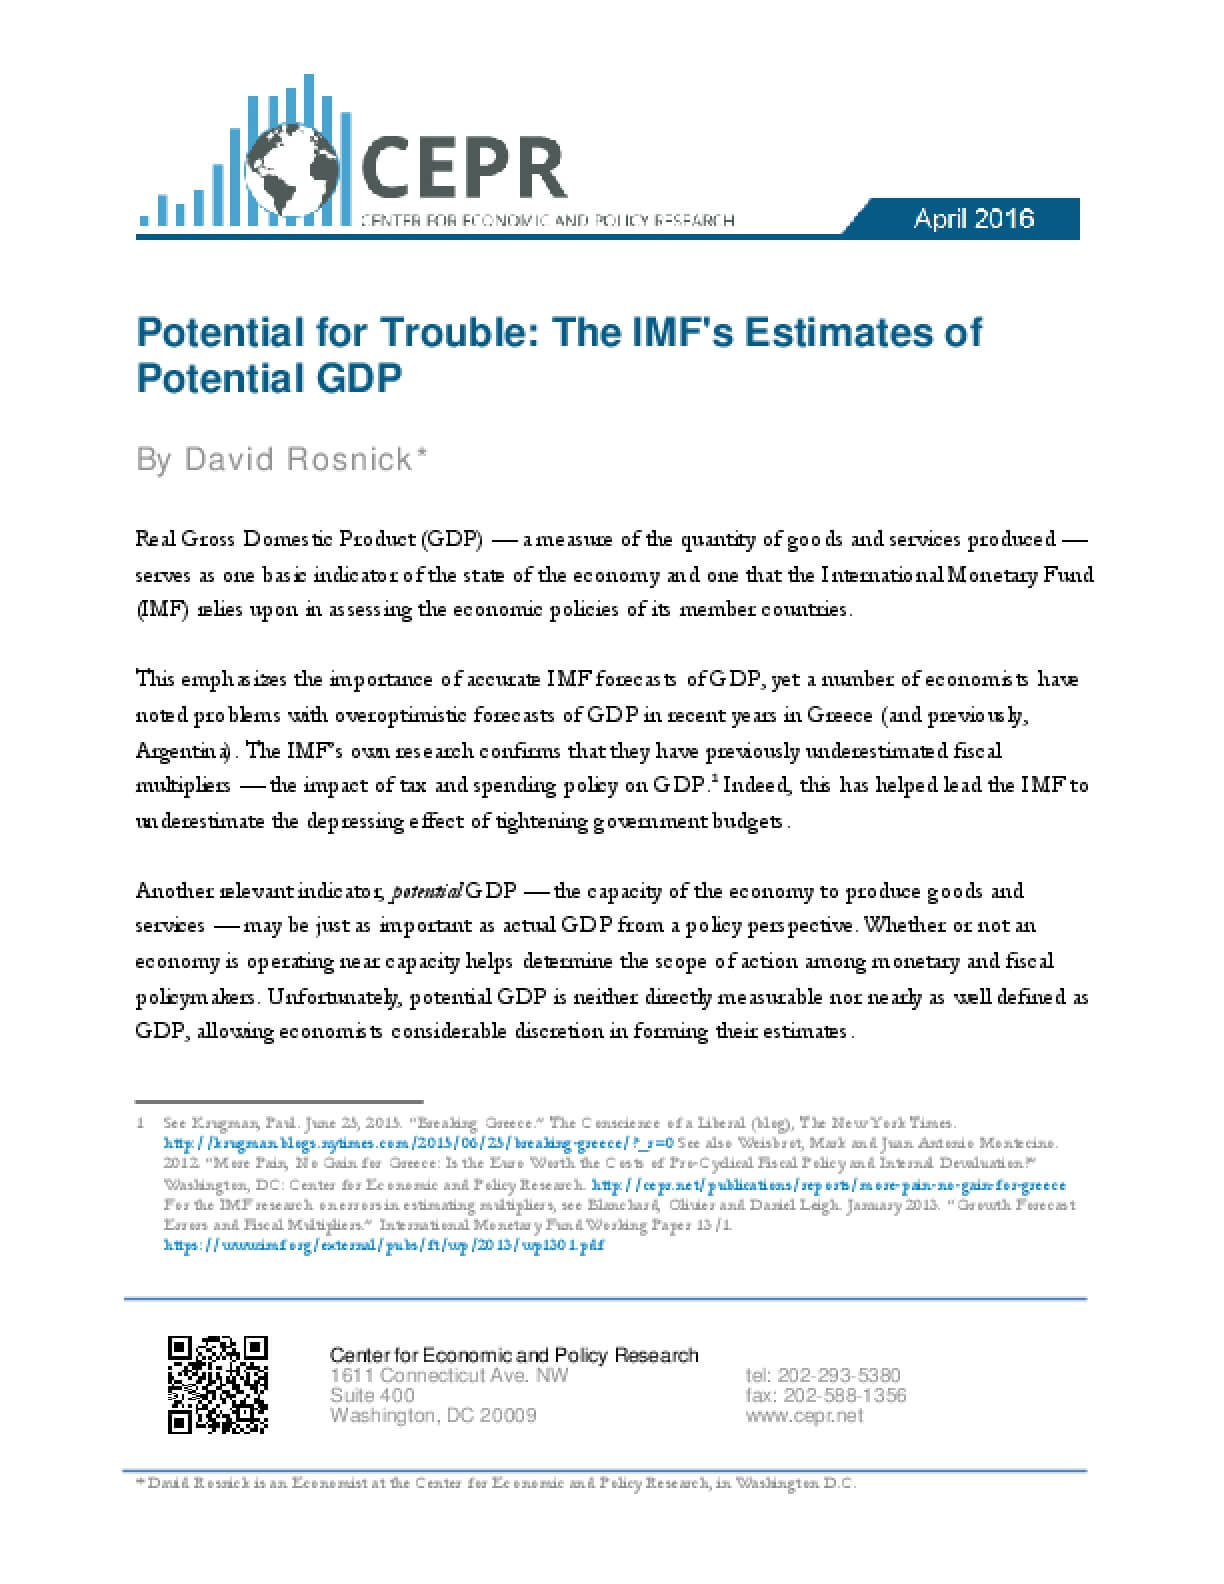 Potential for Trouble: The IMF's Estimates of Potential GDP